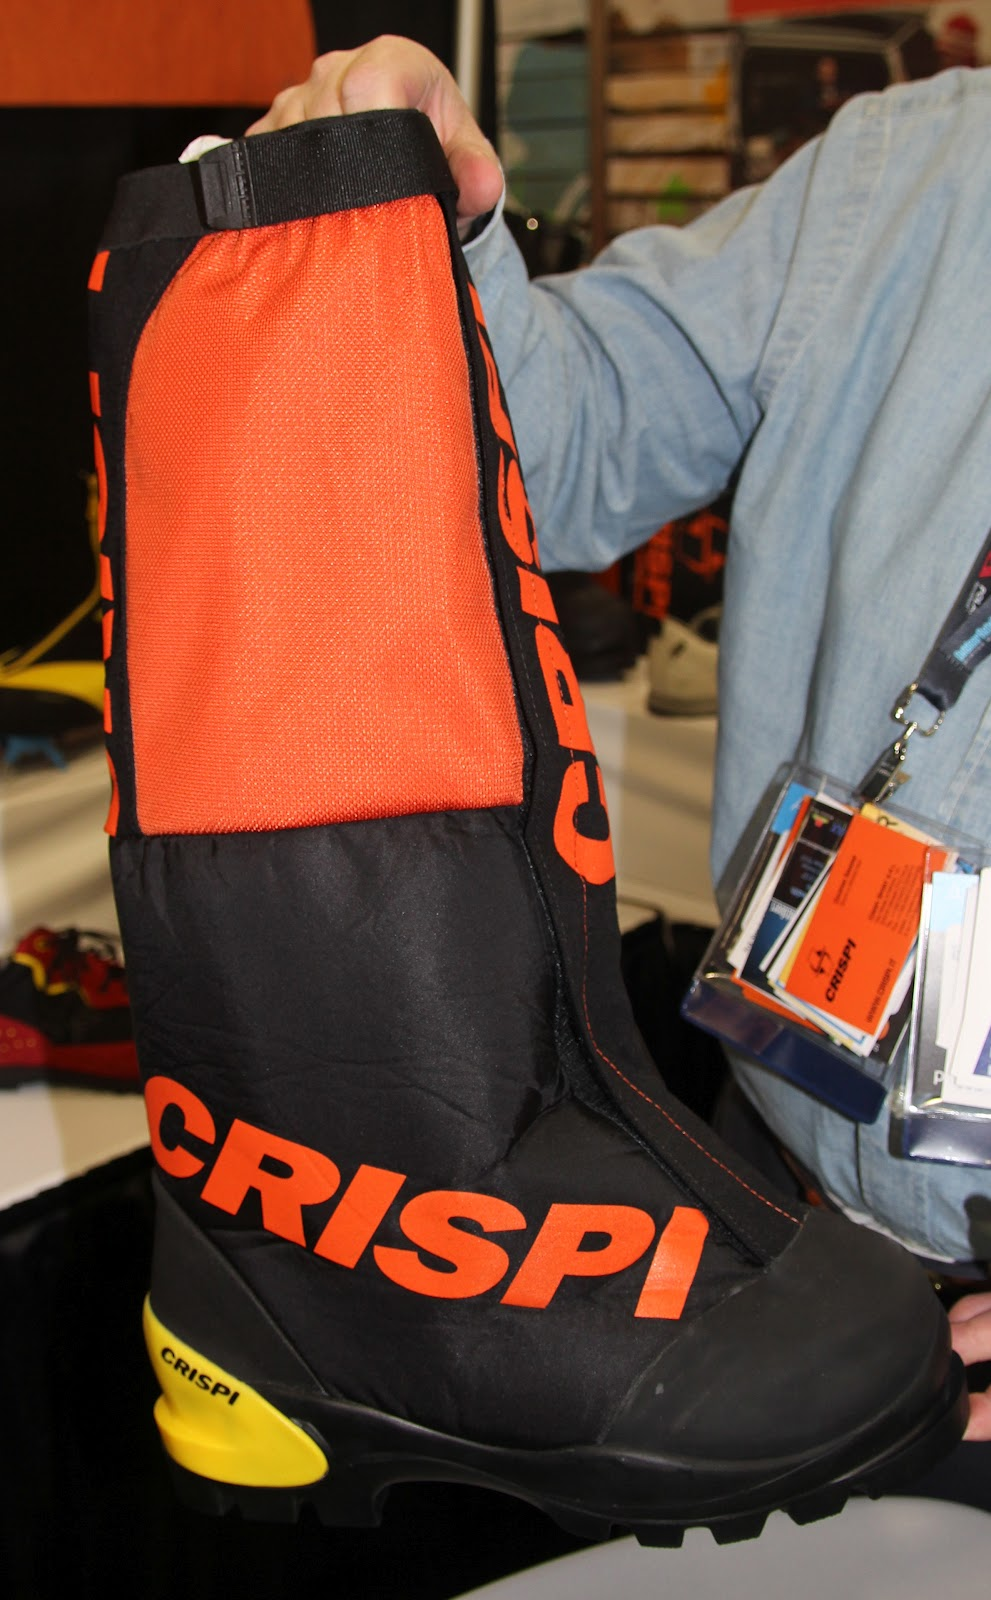 Crispi Fall 2012 Performance Footwear Hike Trek